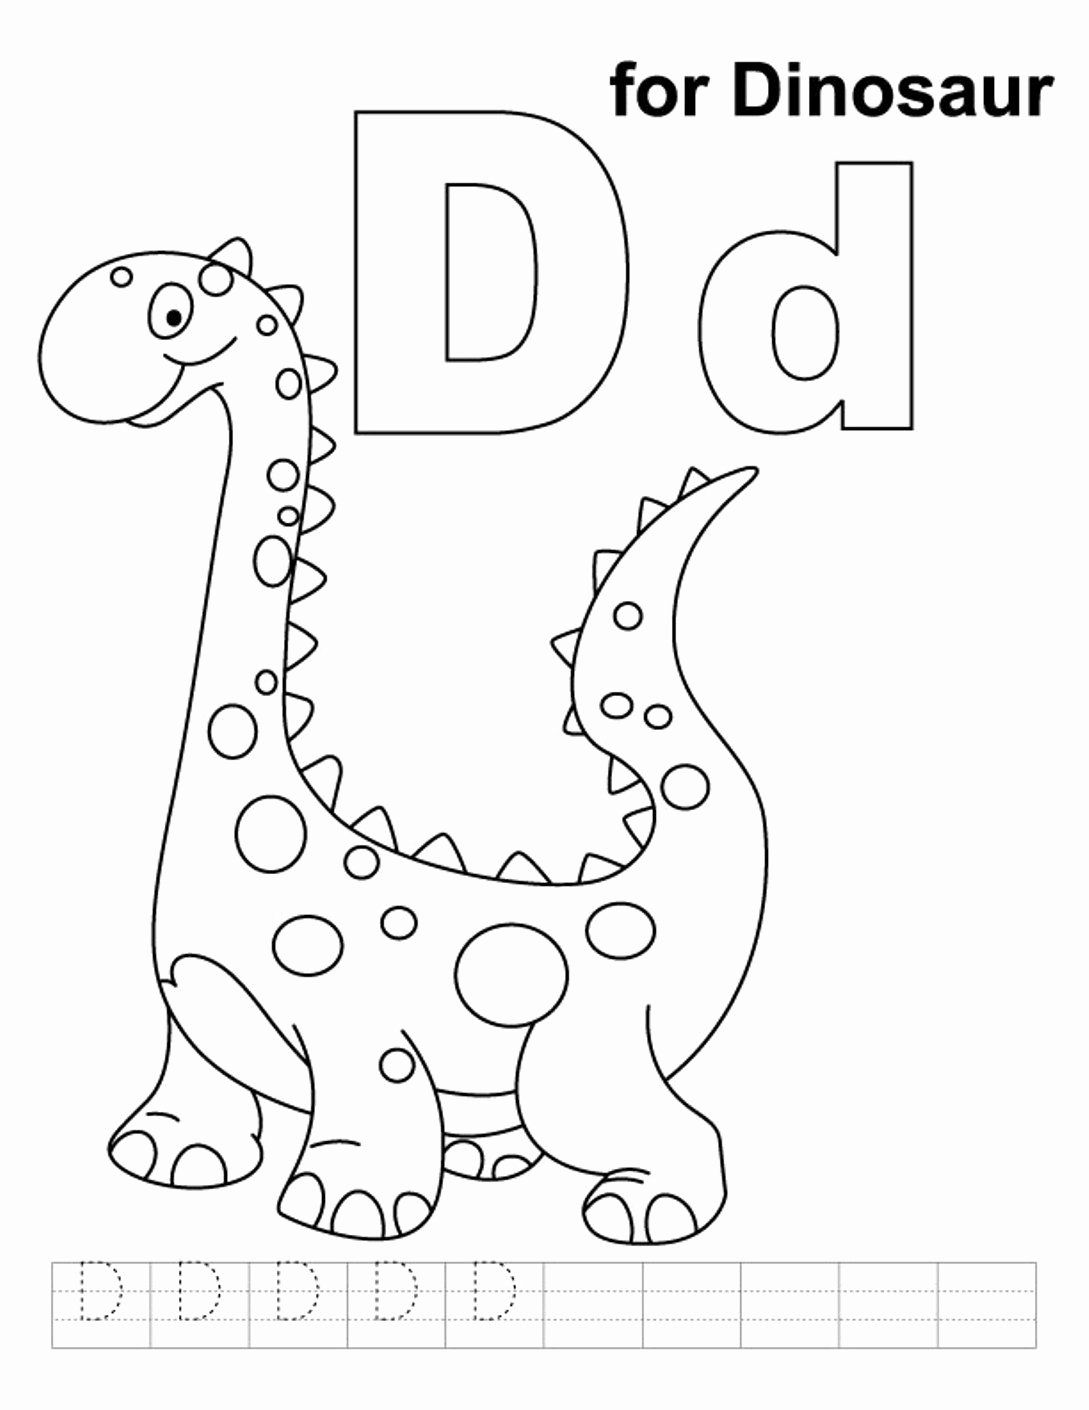 Alphabet Coloring Worksheets For 3 Year Olds Elegant Dinosaur Printable Alphabet Coloring Pages In 2020 Dinosaur Coloring Pages Abc Coloring Pages Abc Coloring